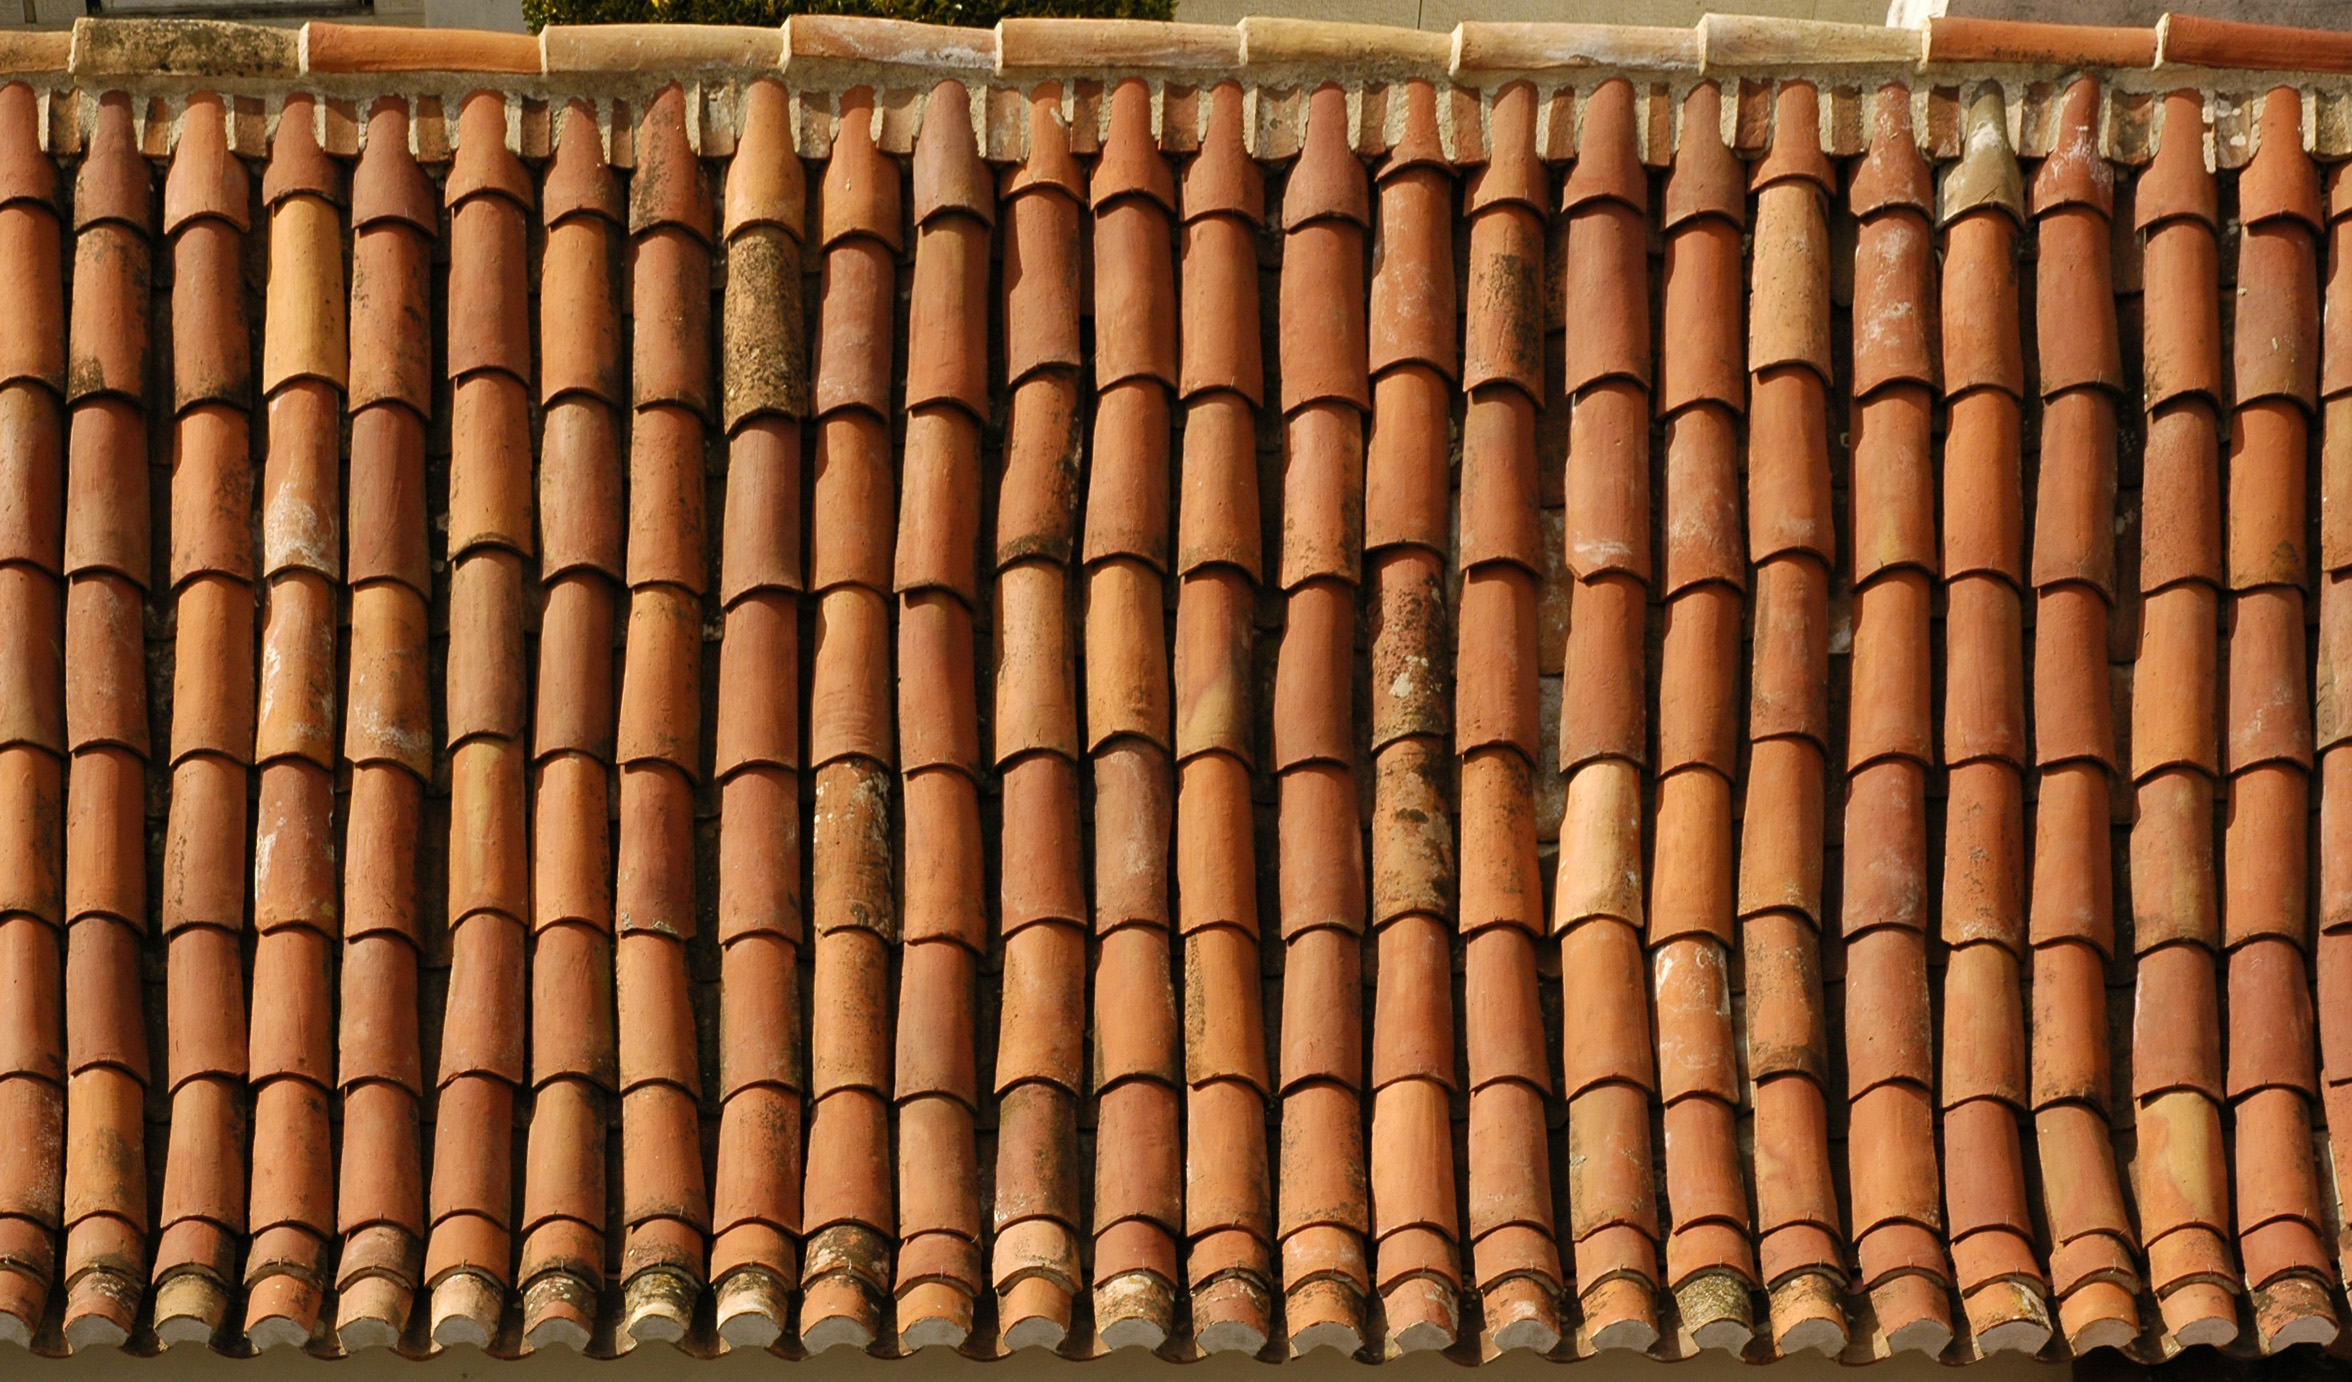 tile texture image background.